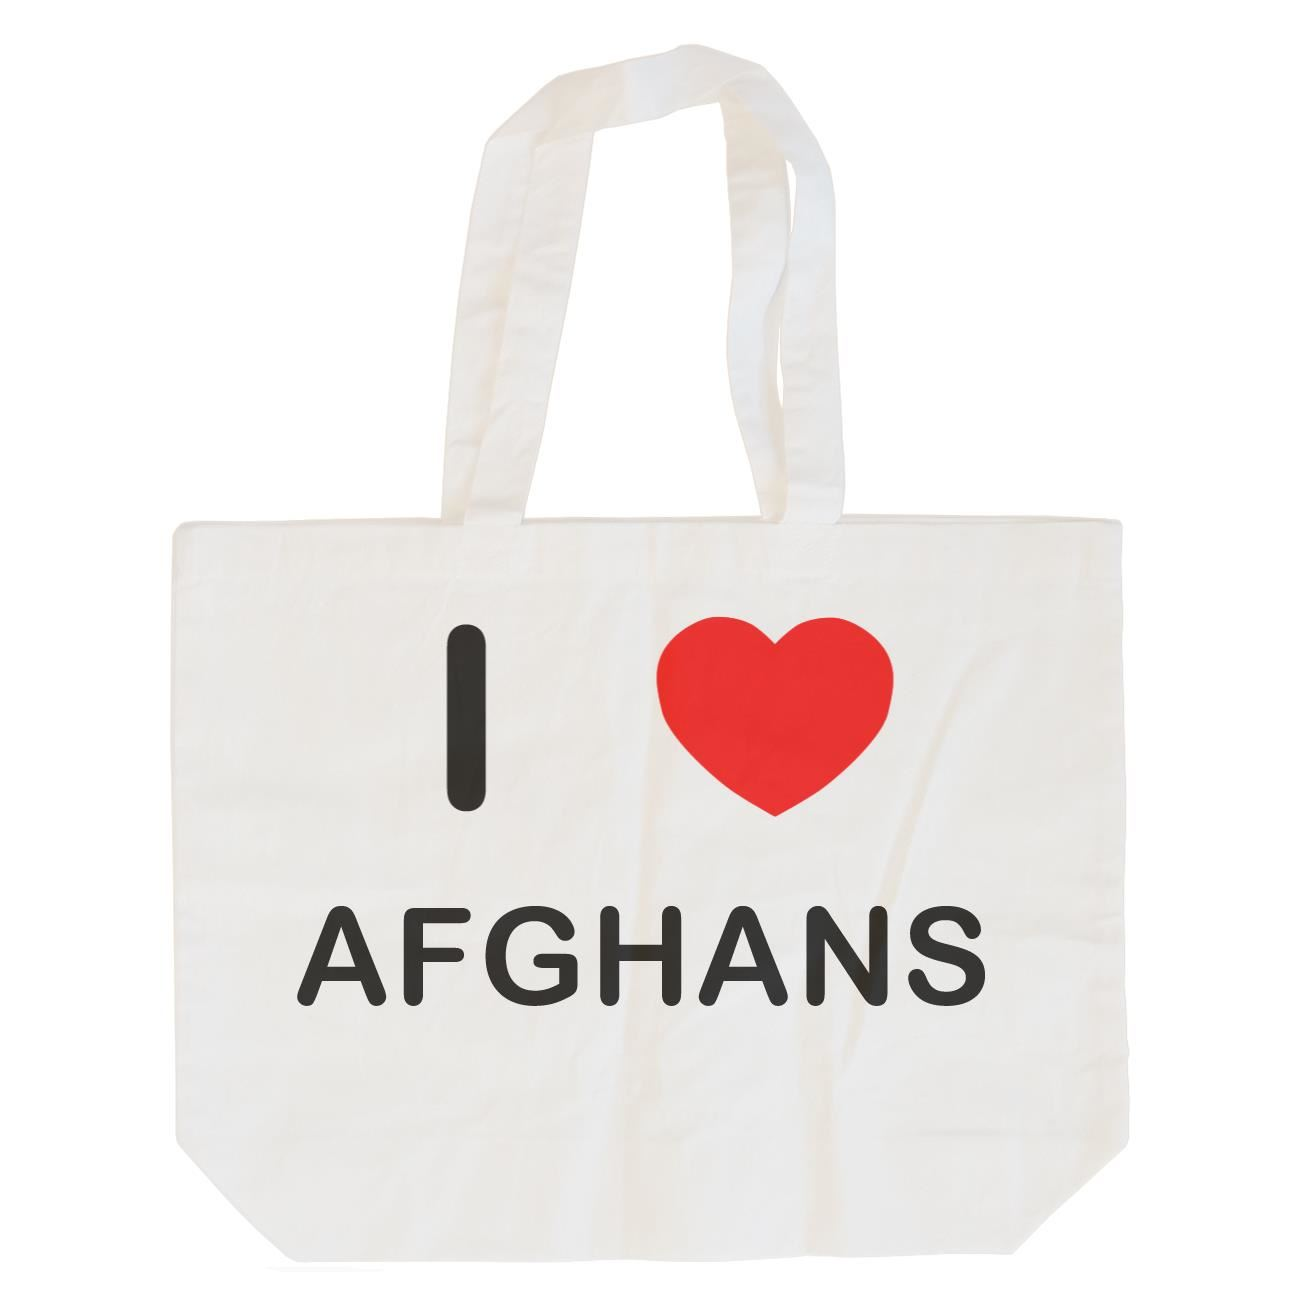 I Love Afghans - Cotton Bag | Size choice Tote, Shopper or Sling